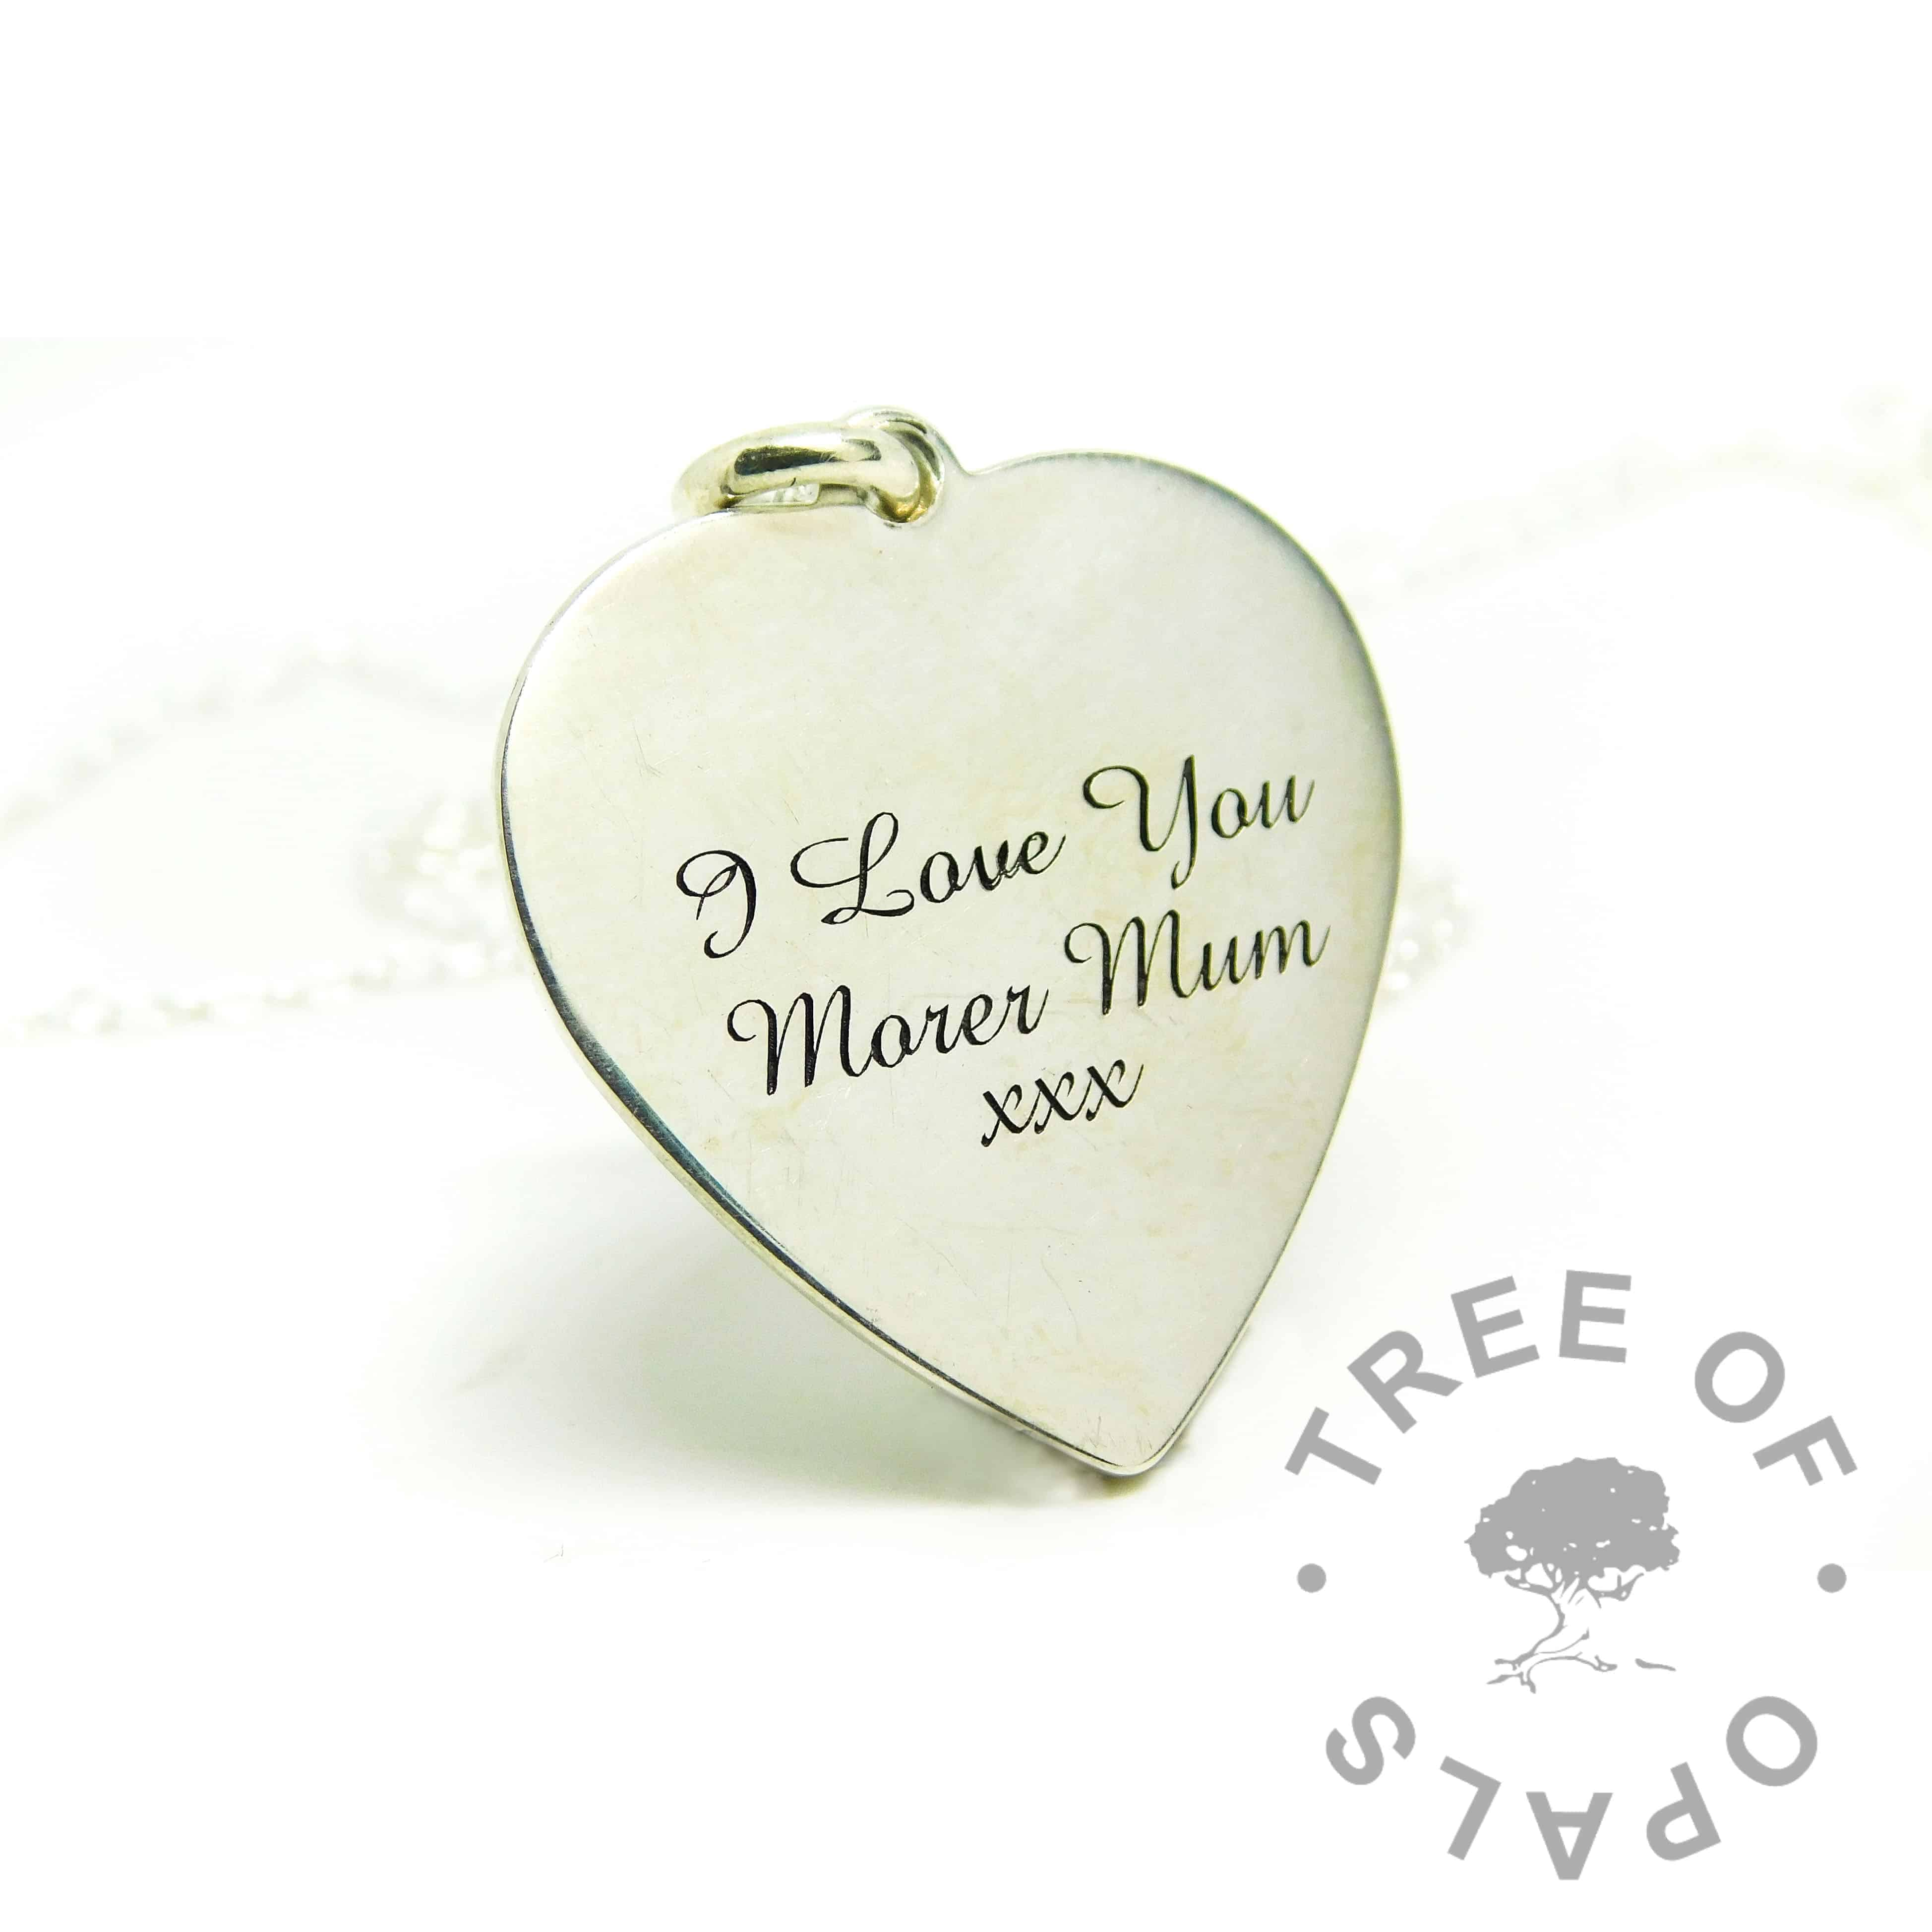 large heart pendant with engraving in Amazone BT font